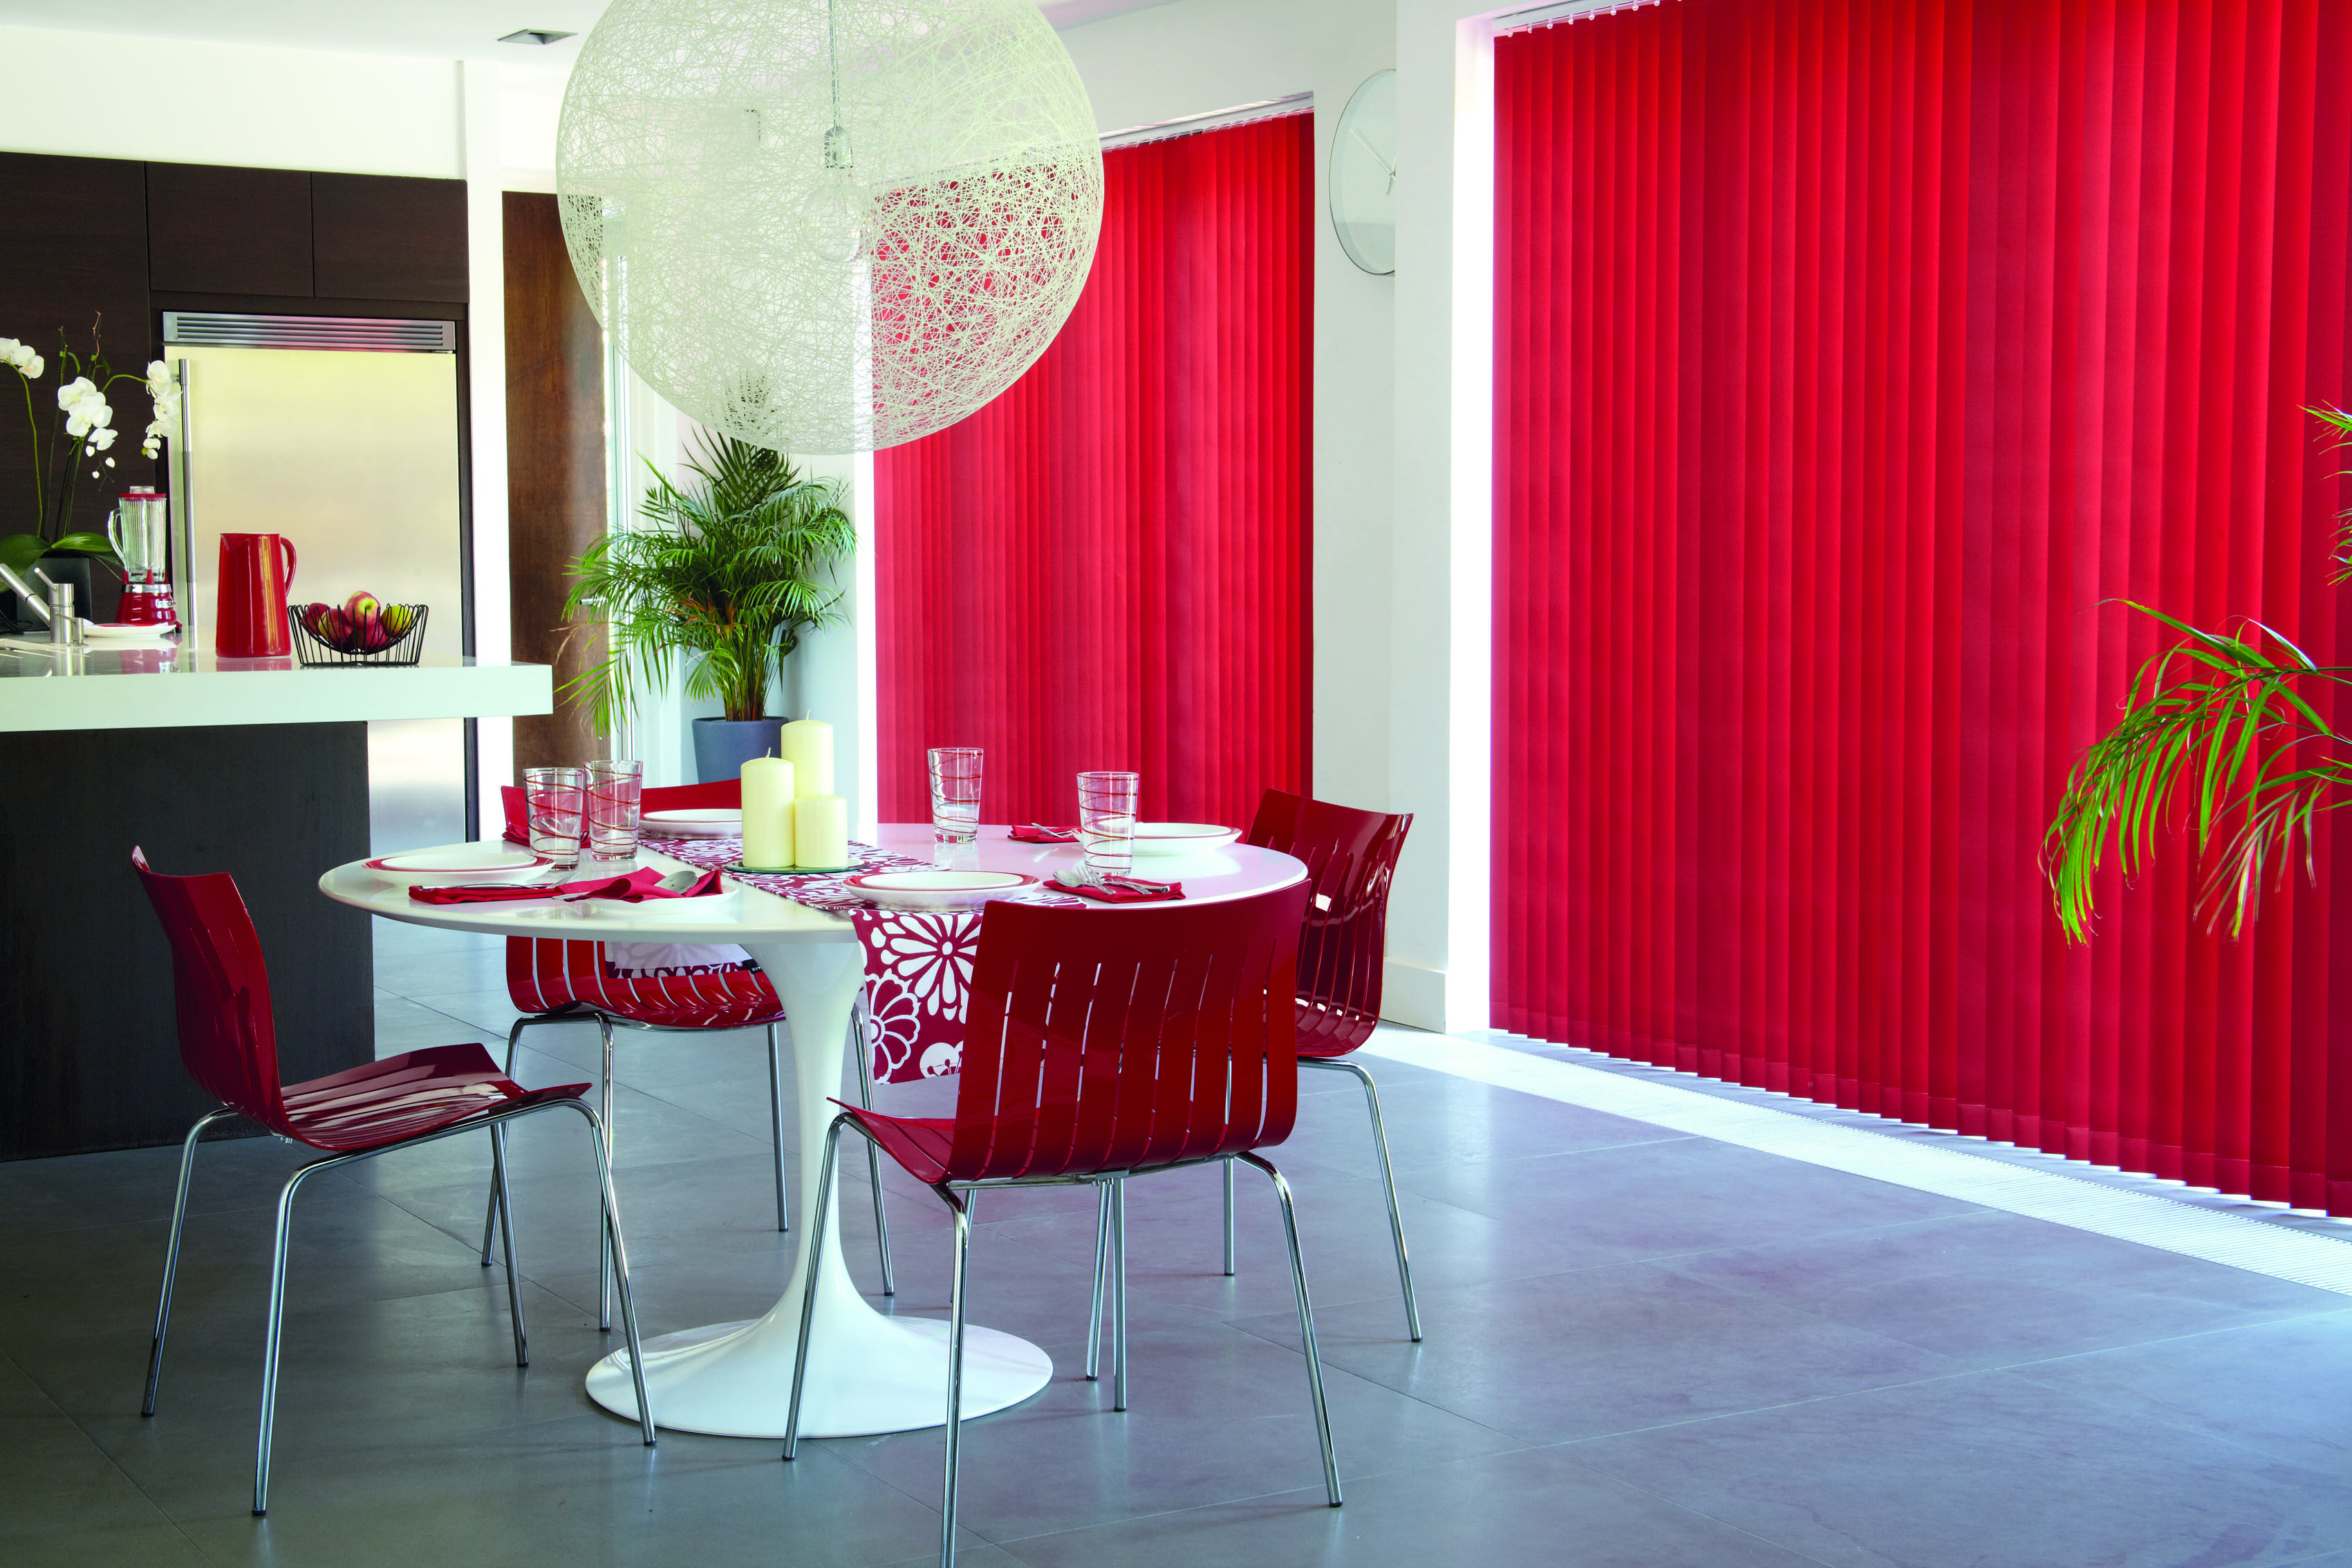 blinds gecco vertical light close blind filter